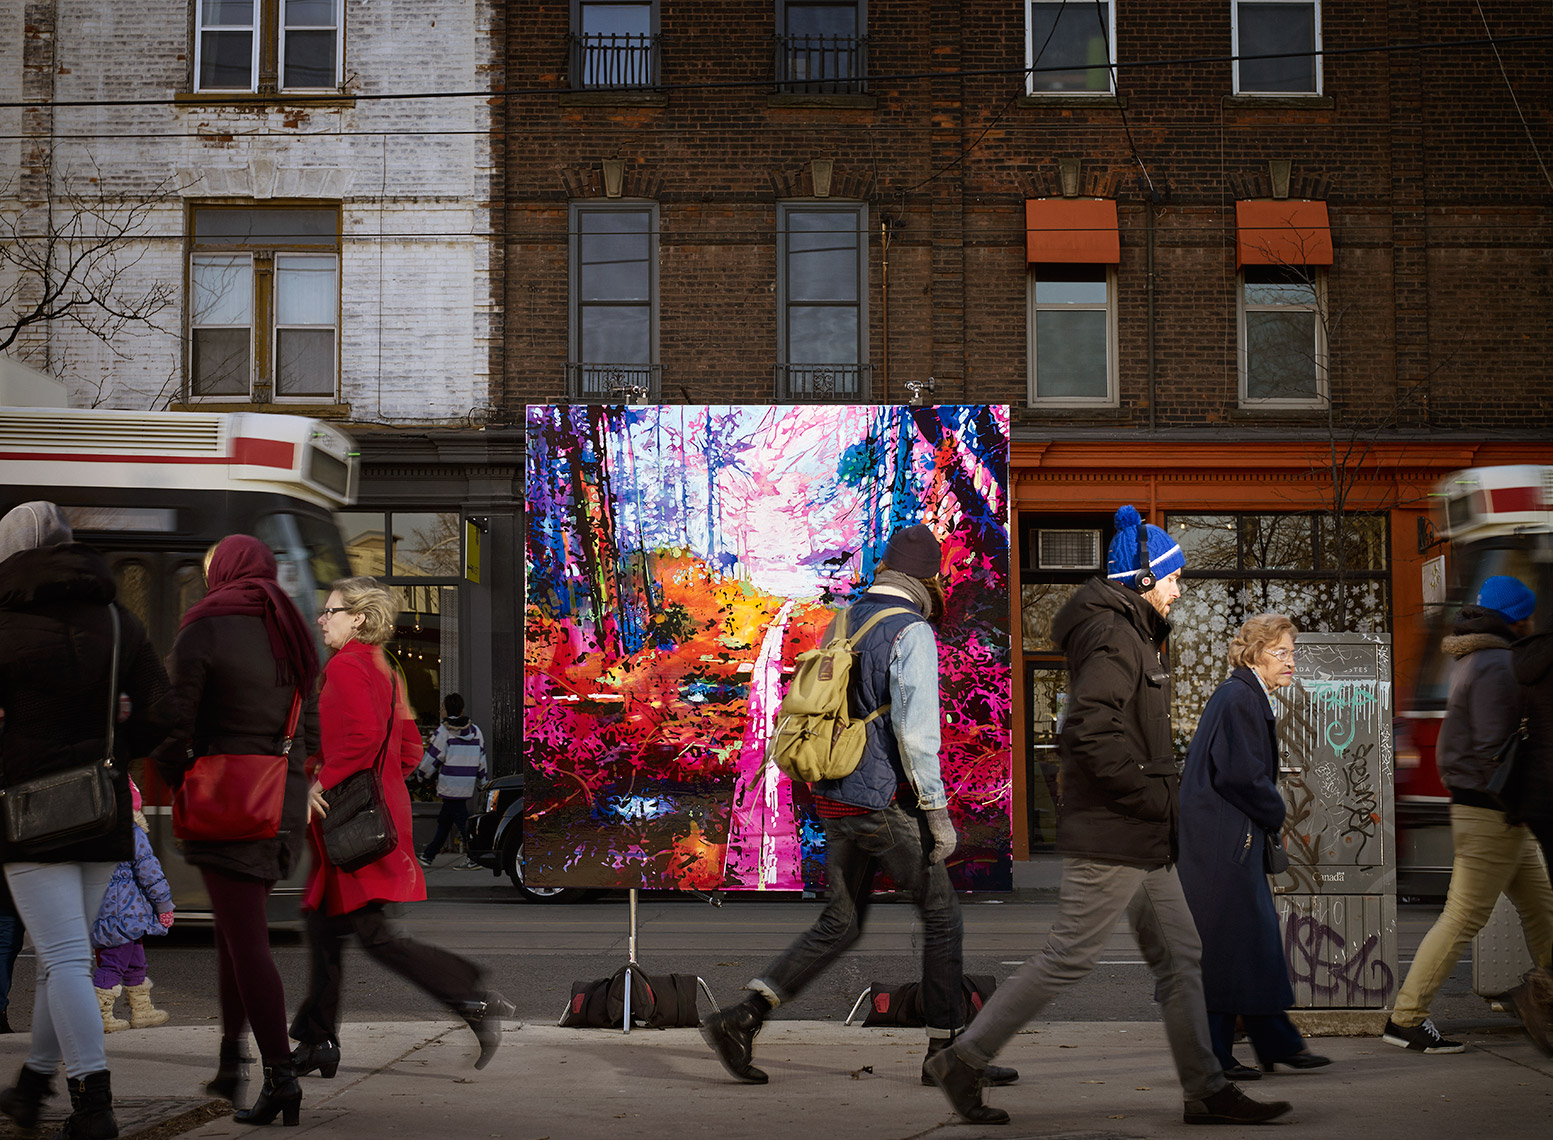 photograph of a landscape painting on a stand in a city street. People walking by on sidewalk and a streetcar